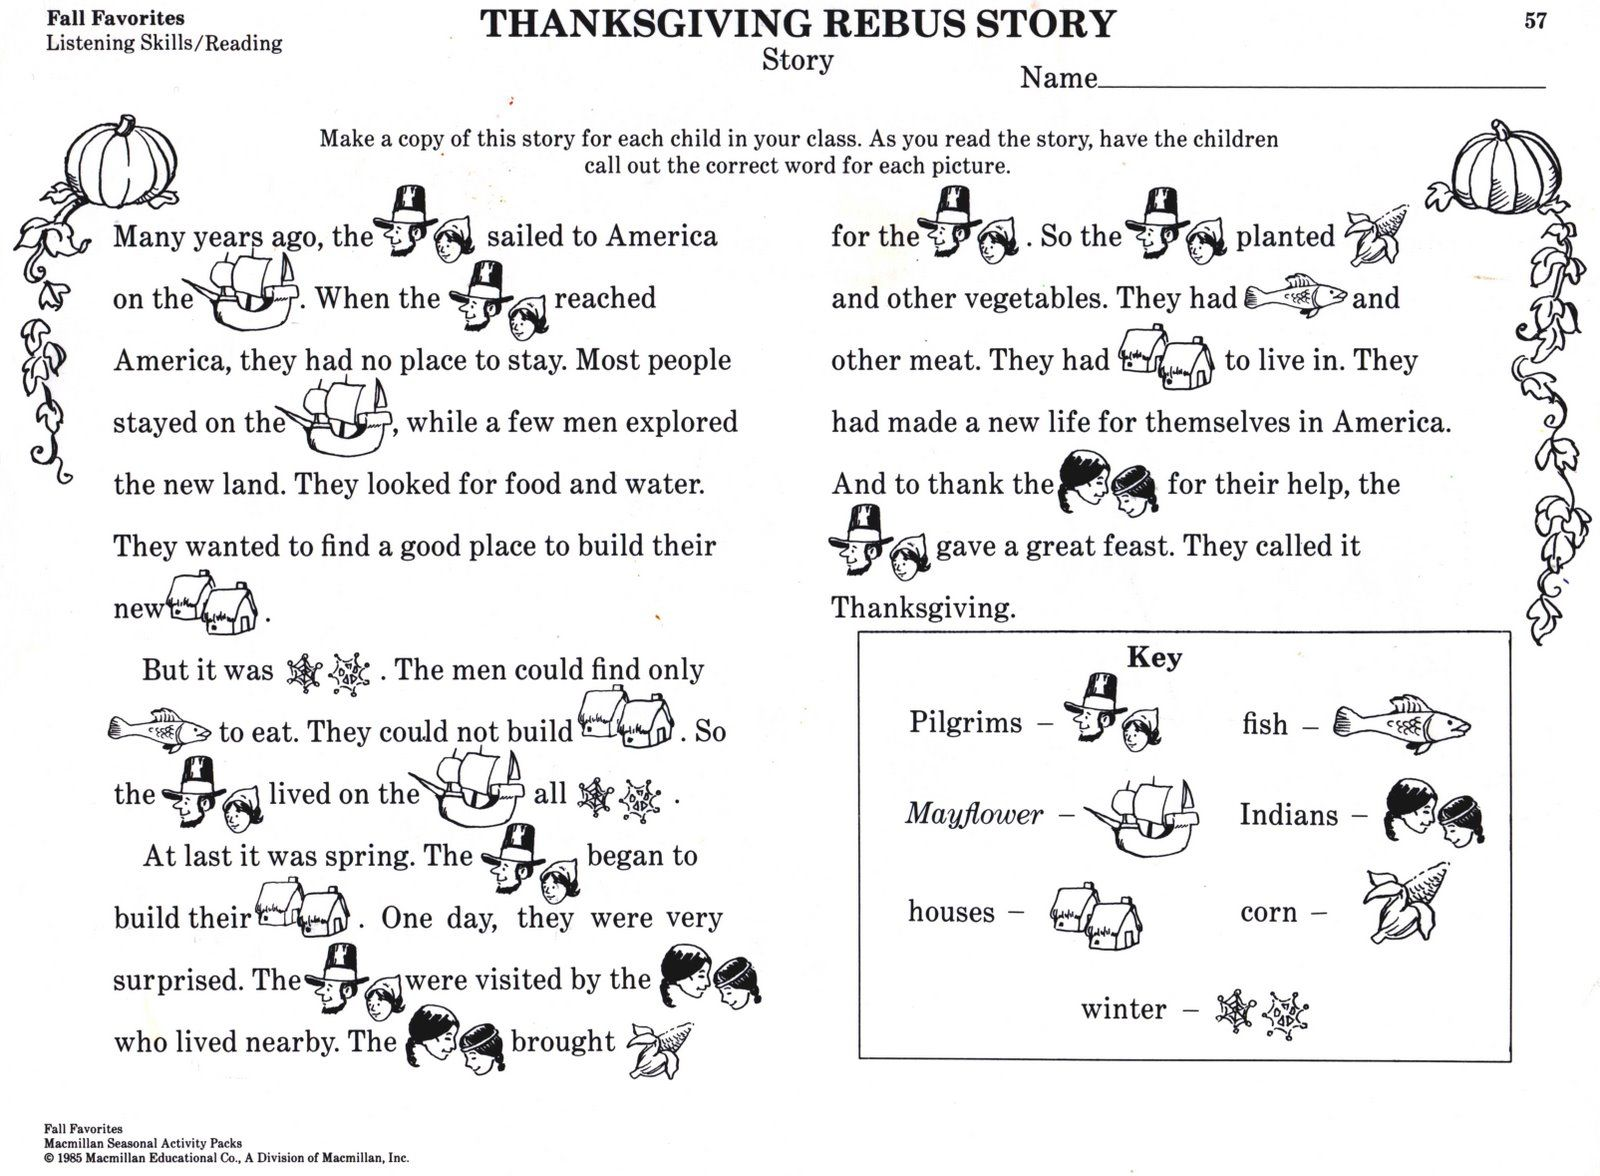 Thanksgiving Rebus Story Simple Explanation Of